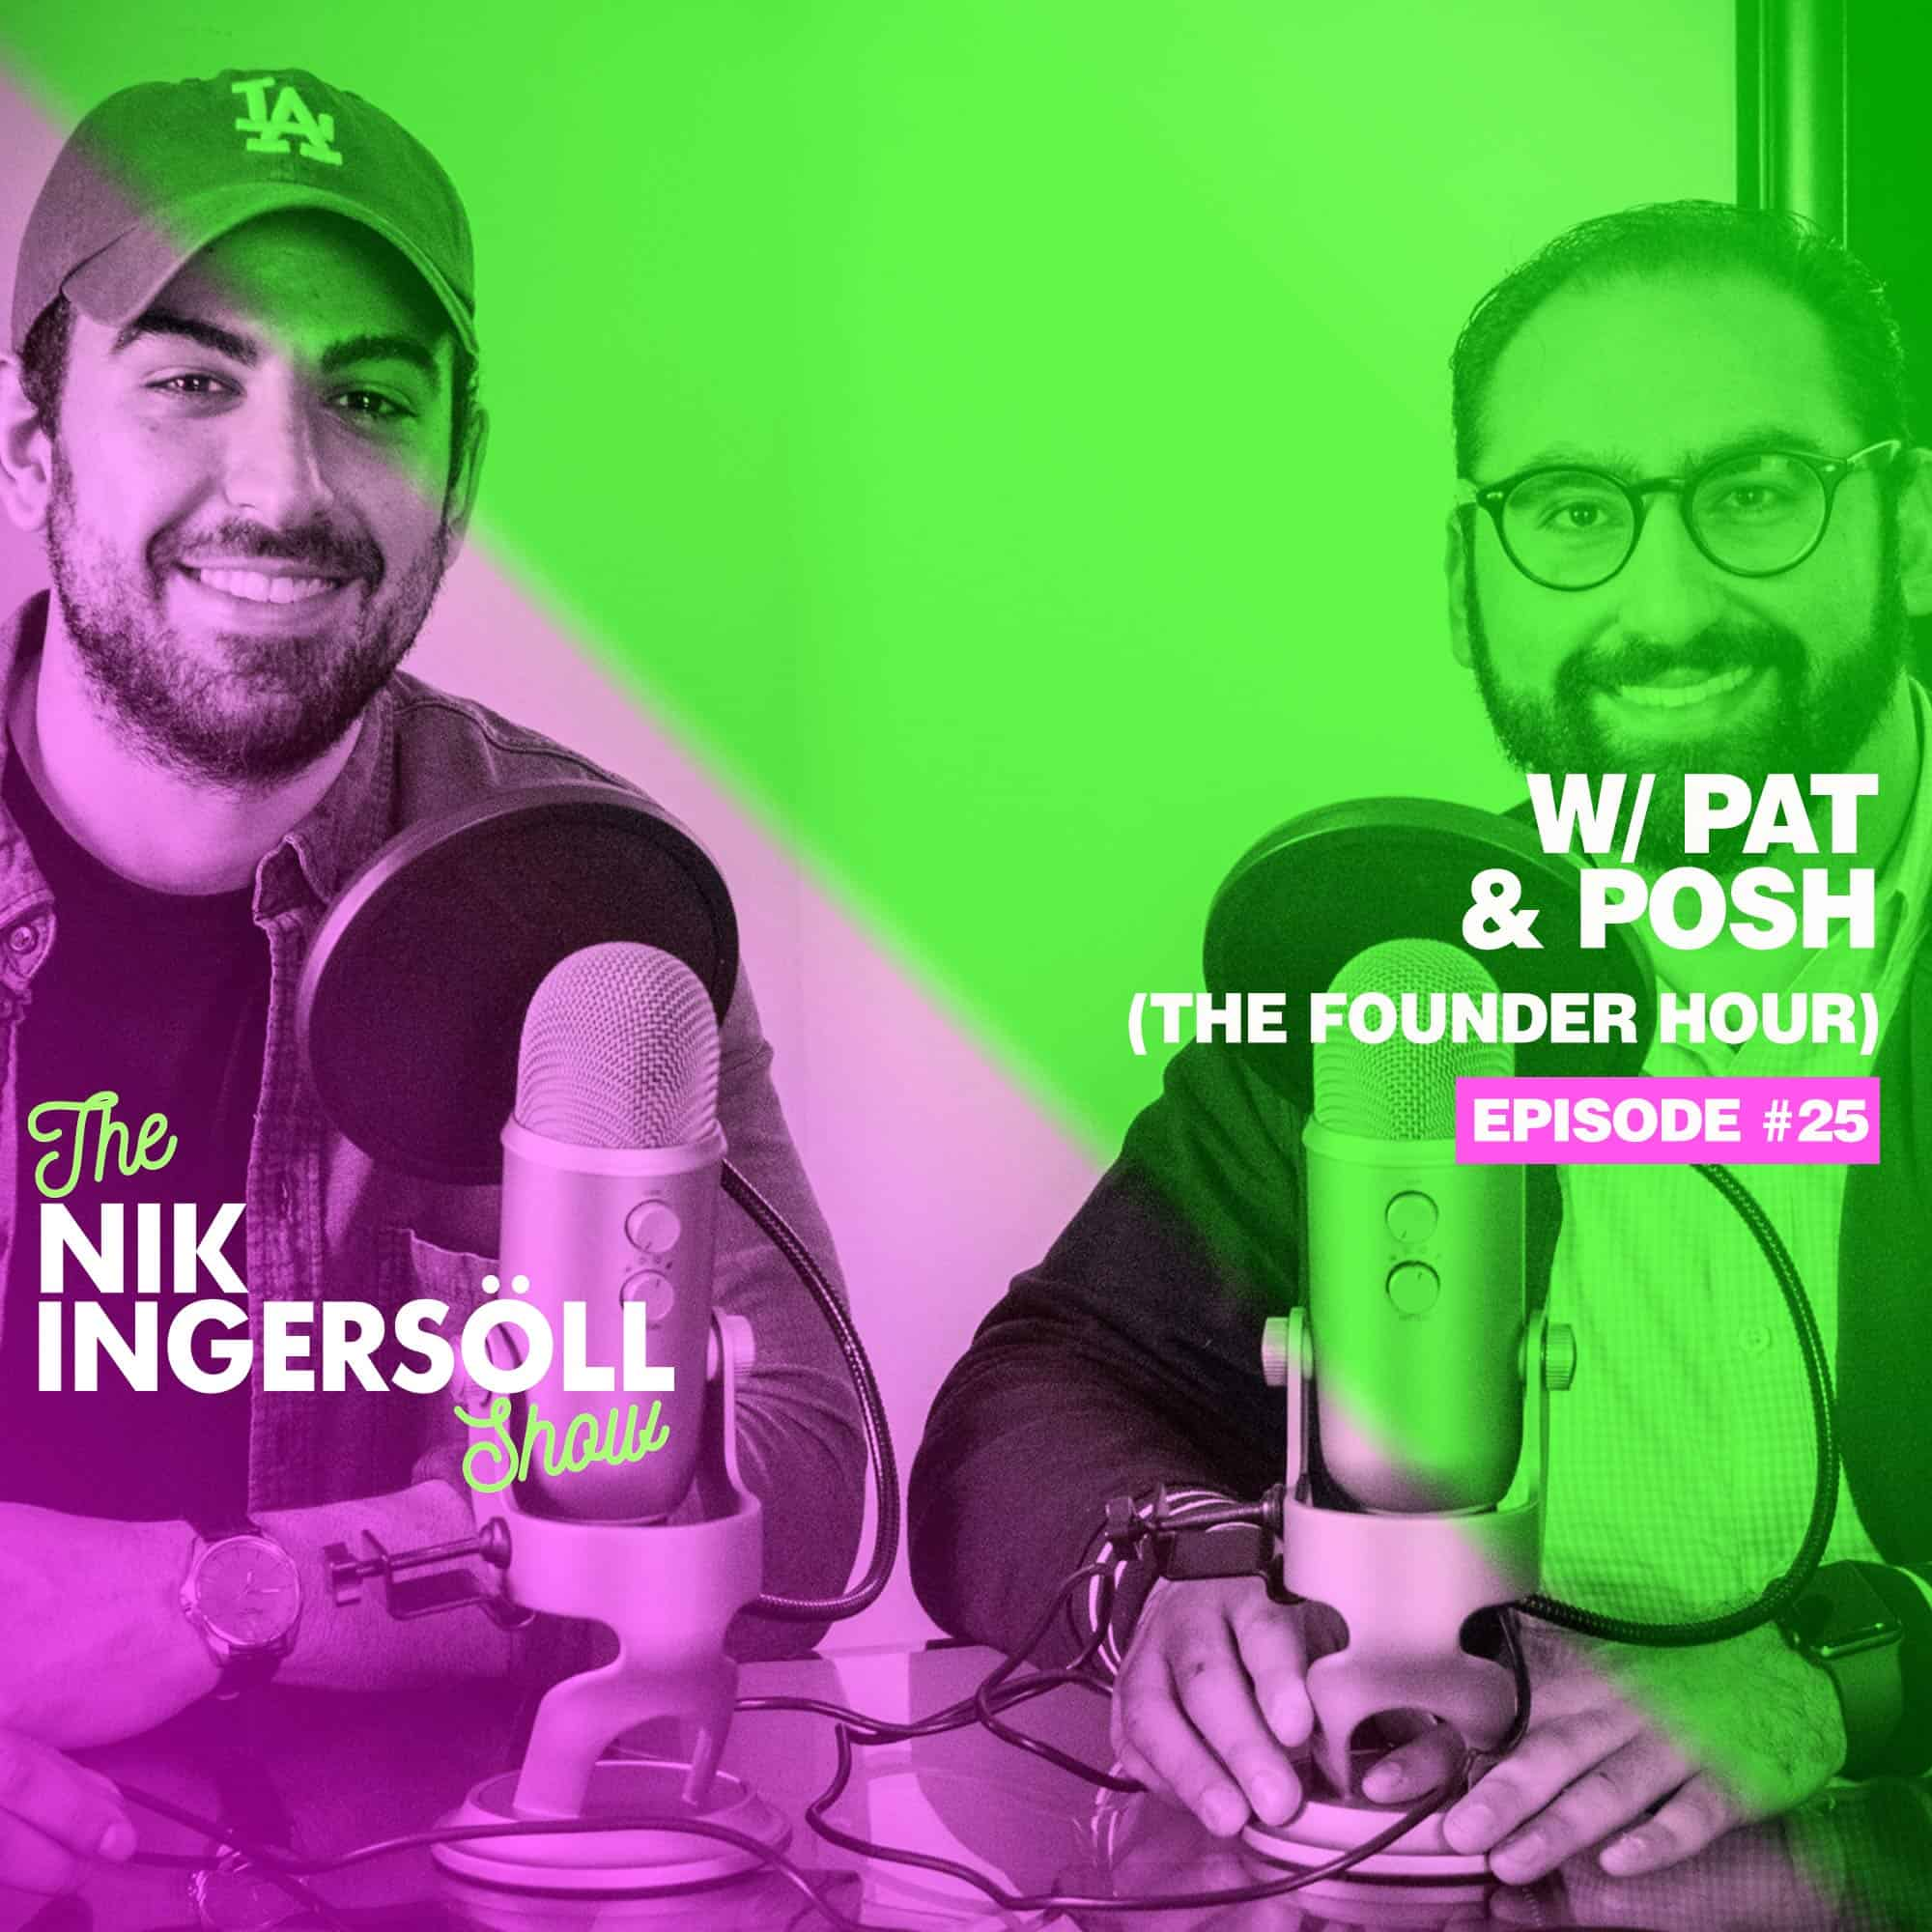 #25: Pat & Posh – The Founder Hour Podcast – (Podcast) The Nik Ingersoll Show